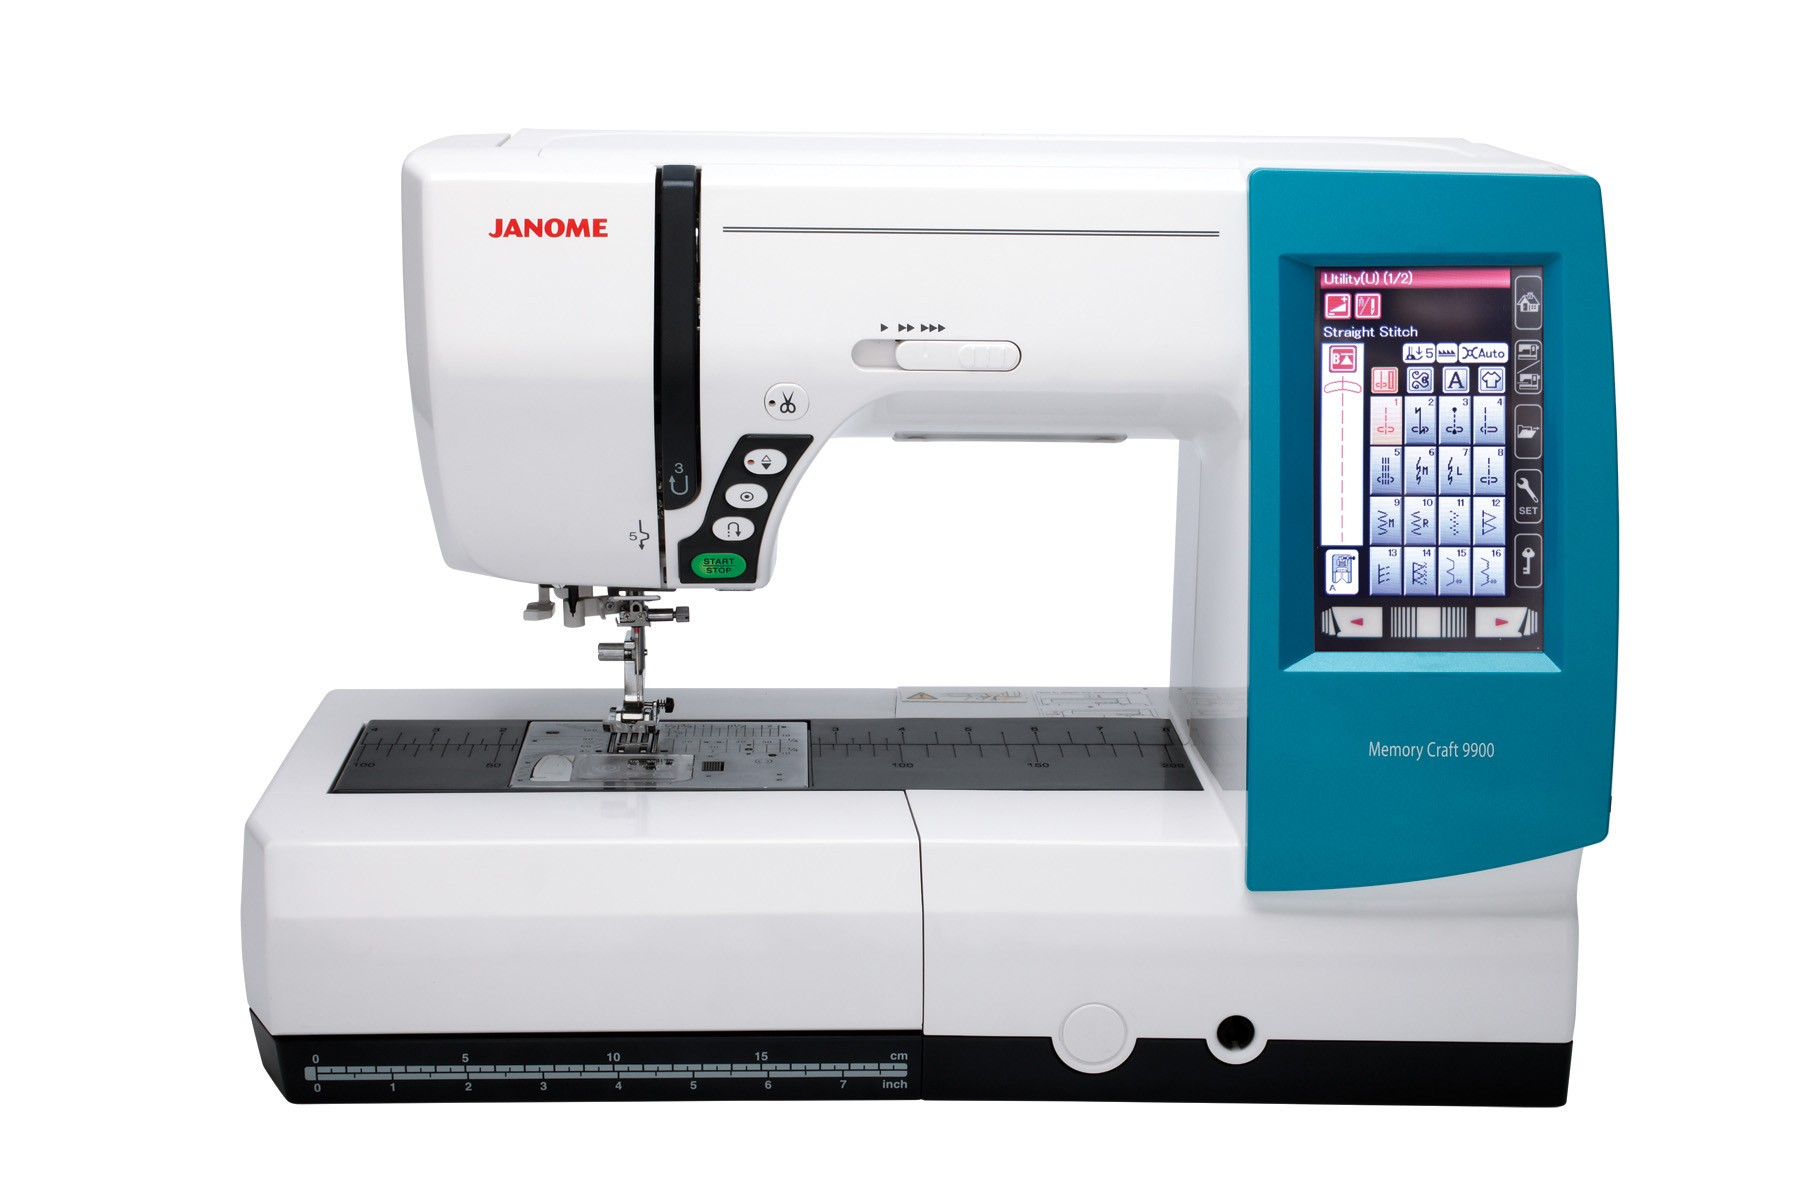 Janome memory craft 9900 -  Memory Craft 9900 Sewing Machines Janome Mc9900 Teal